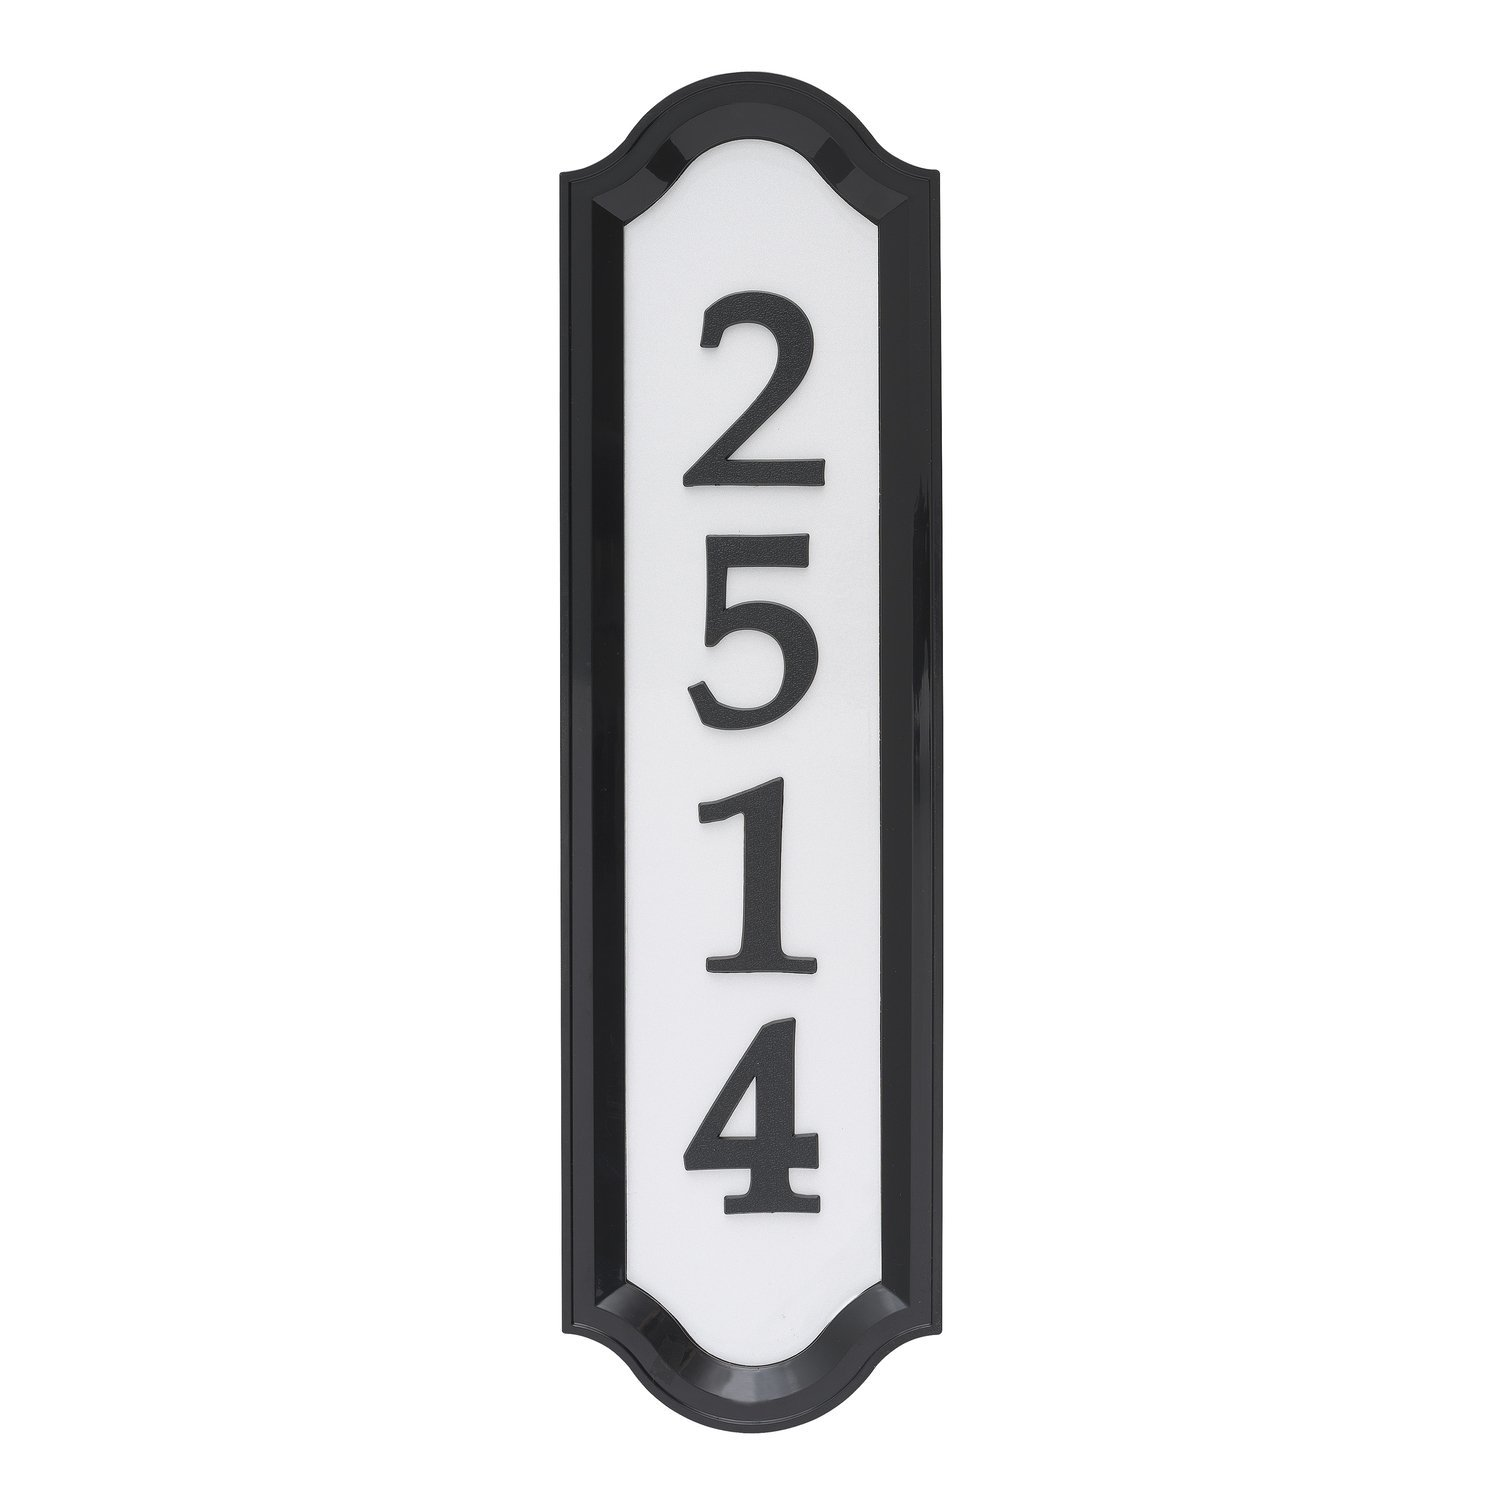 Whitehall Products Standard Wall Nite Bright Richfield One Line Home Address Sign, Black